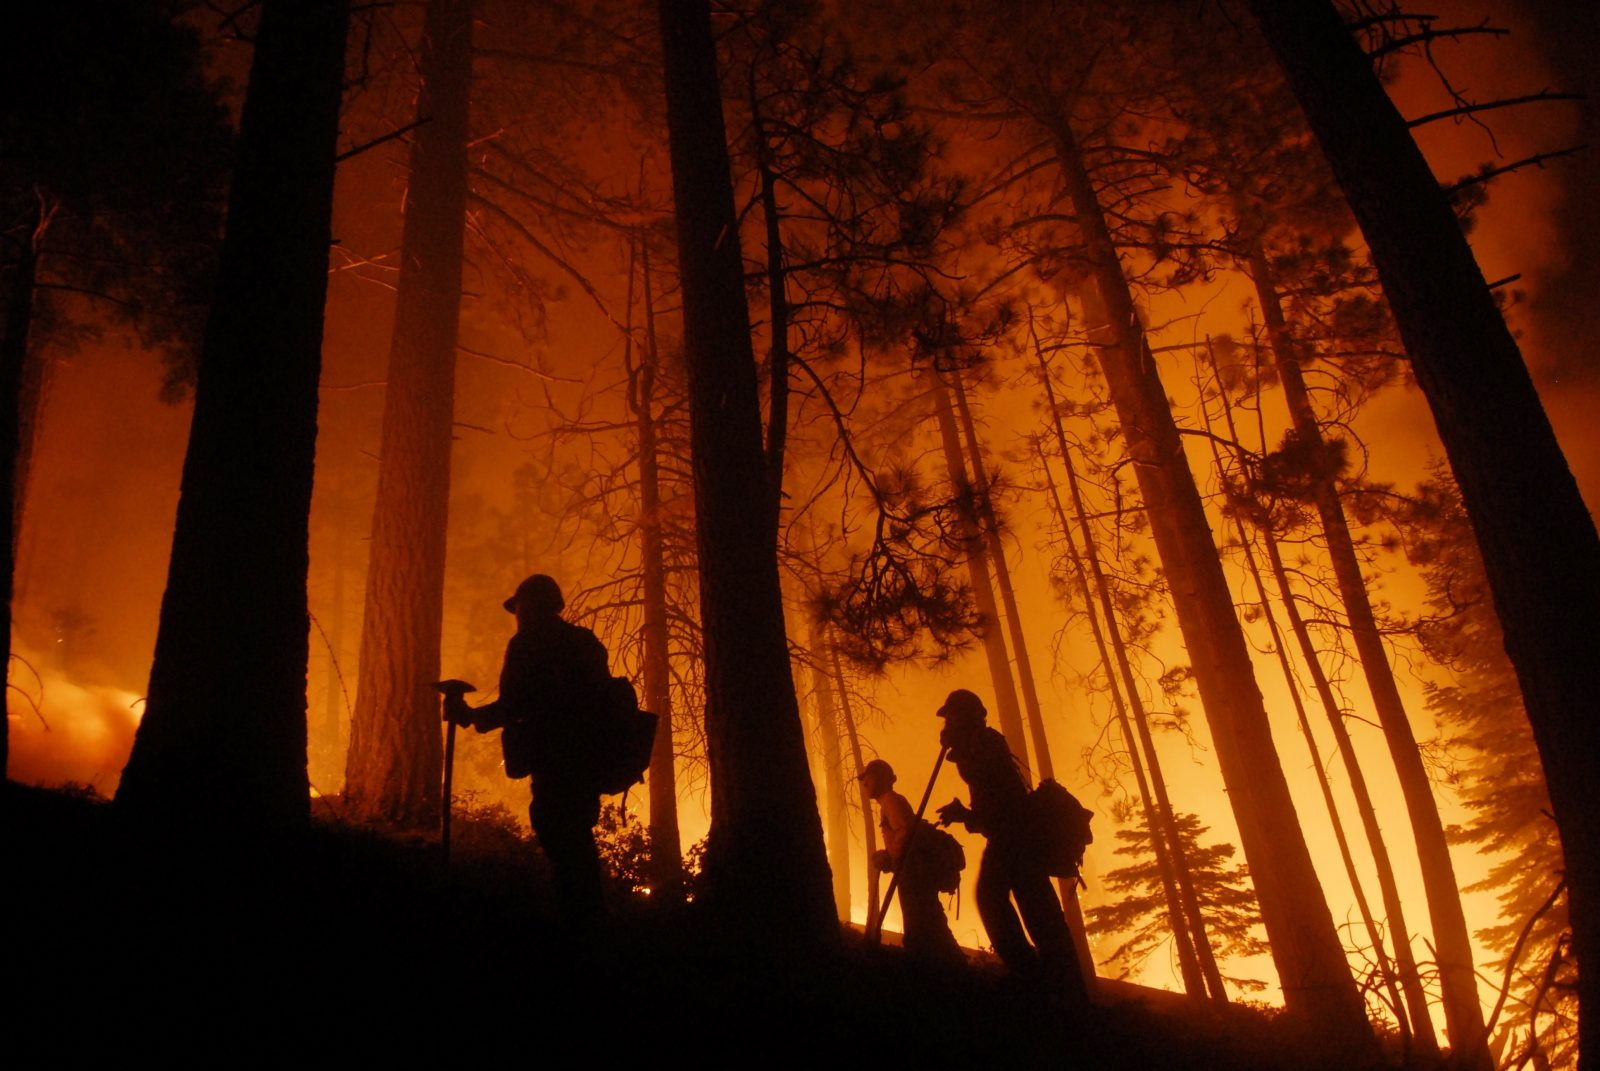 Firefighters watch a prescribed burn in South Lake Tahoe, California